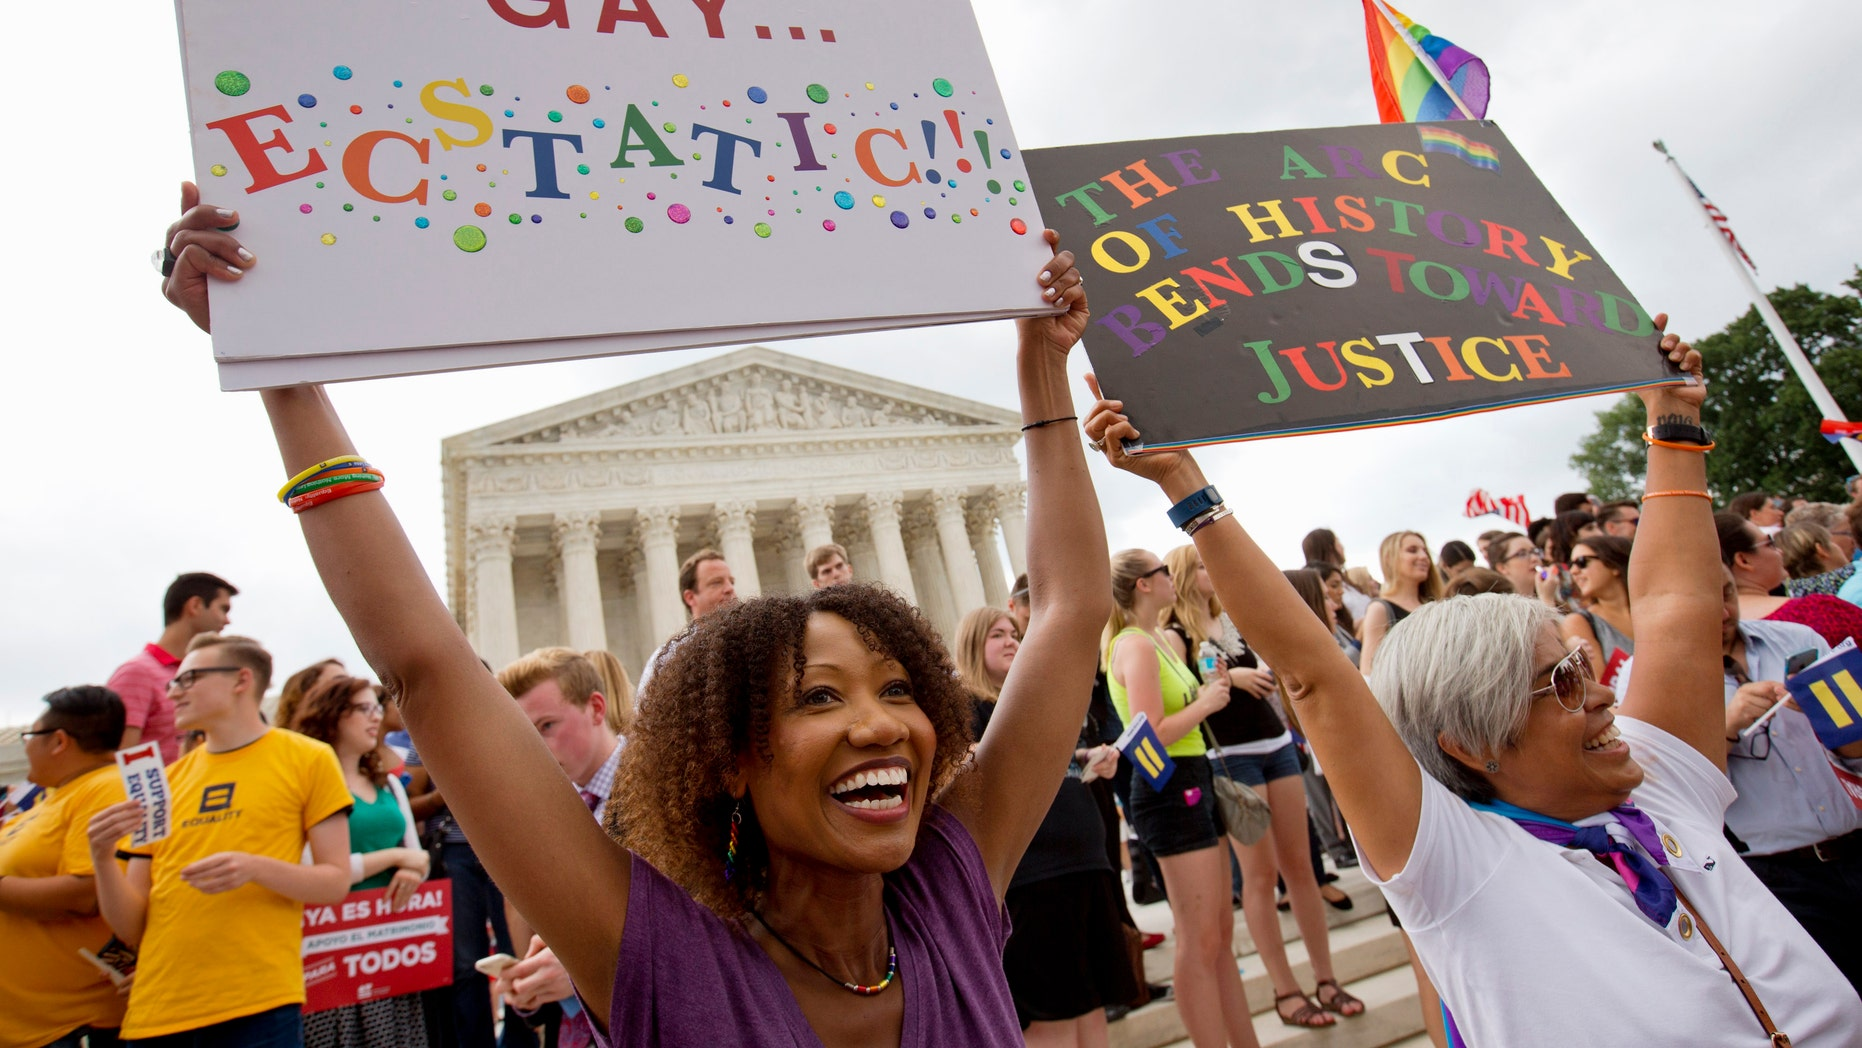 Ikeita Cantu, left, and her wife Carmen Guzman, of McLean, Va., hold up signs as they celebrate outside of the Supreme Court in Washington, Friday June 26, 2015, after the court declared that same-sex couples have a right to marry anywhere in the US. The couple was married in Canada in 2009 when gay marriage was illegal in Virginia. (AP Photo/Jacquelyn Martin)